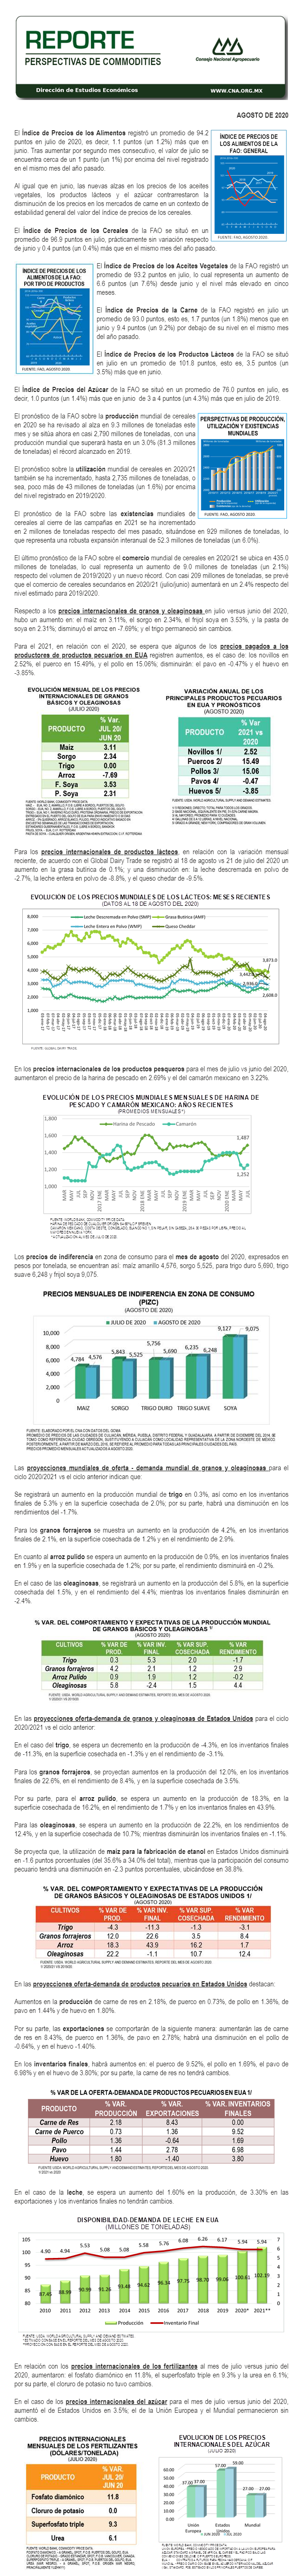 REPORTE DE PERSPECTIVAS DE COMMODITIES DE AGOSTO DE 2020.